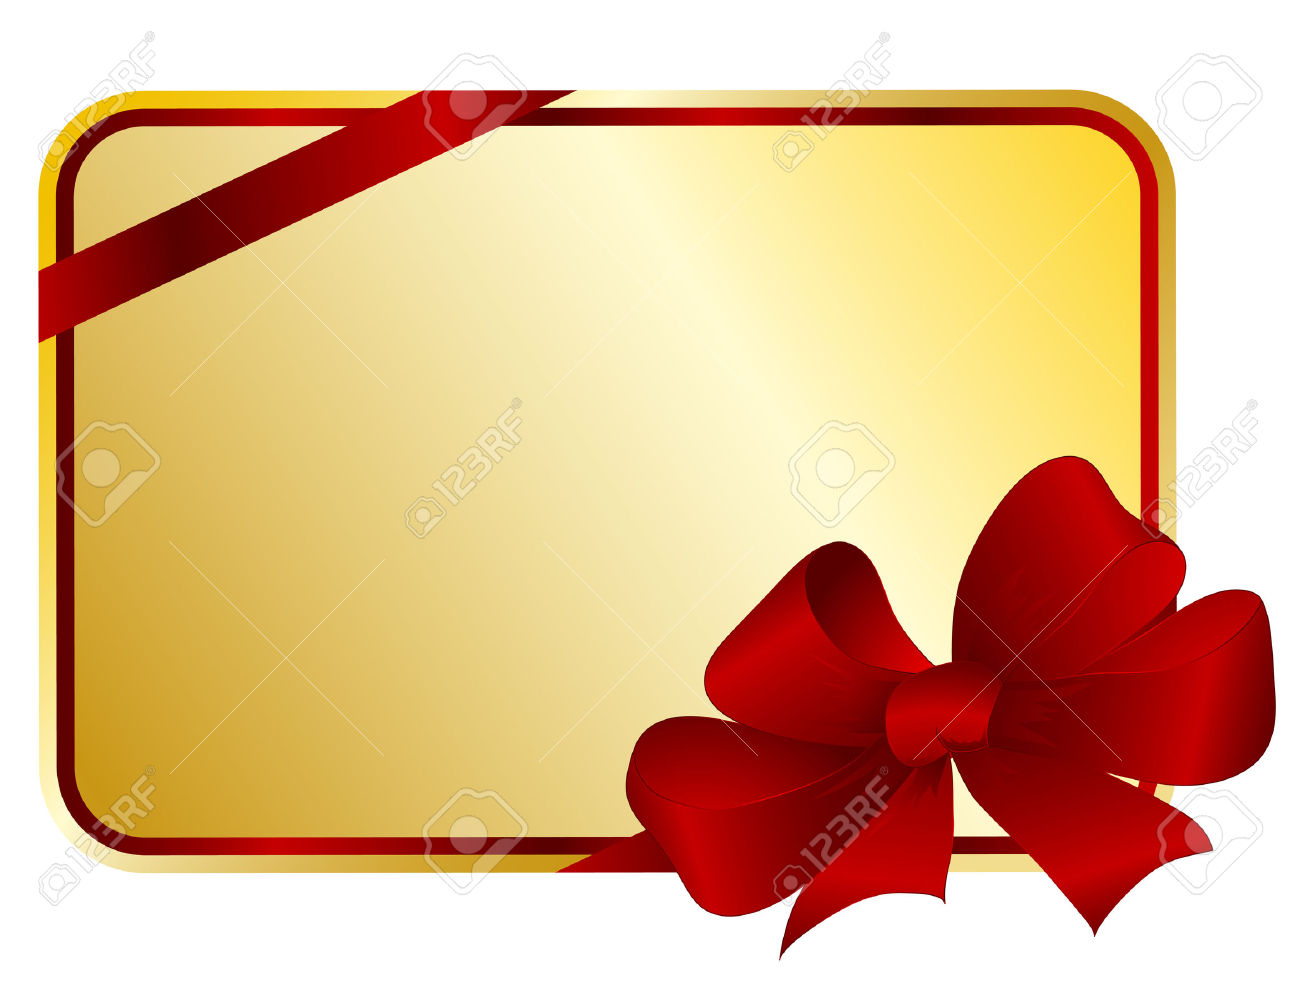 Gift Card With A Bow And A Tape Royalty Free Cliparts, Vectors.